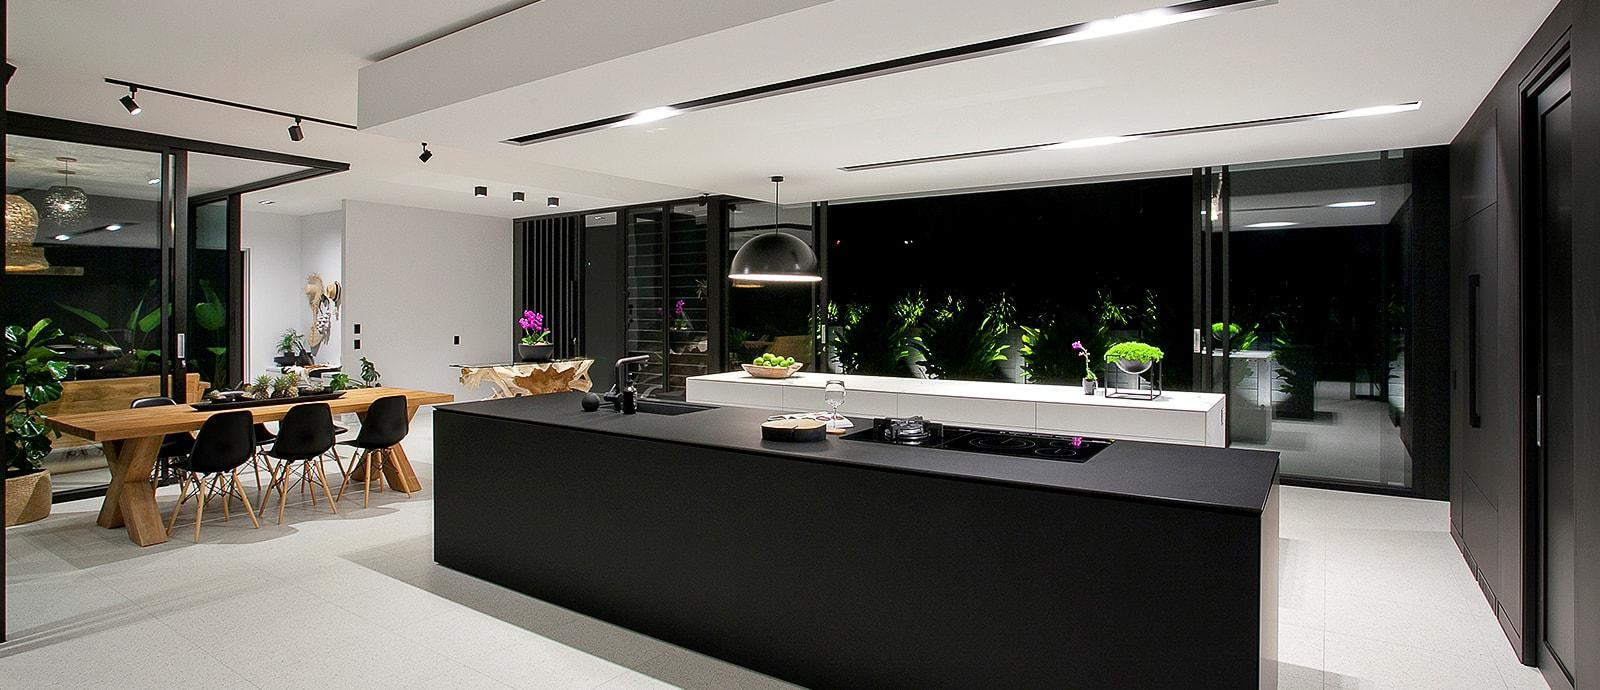 Sarah_Waller_Design_Hero_8_Doonan_Glasshouse_kitchen_image_1600_1-min